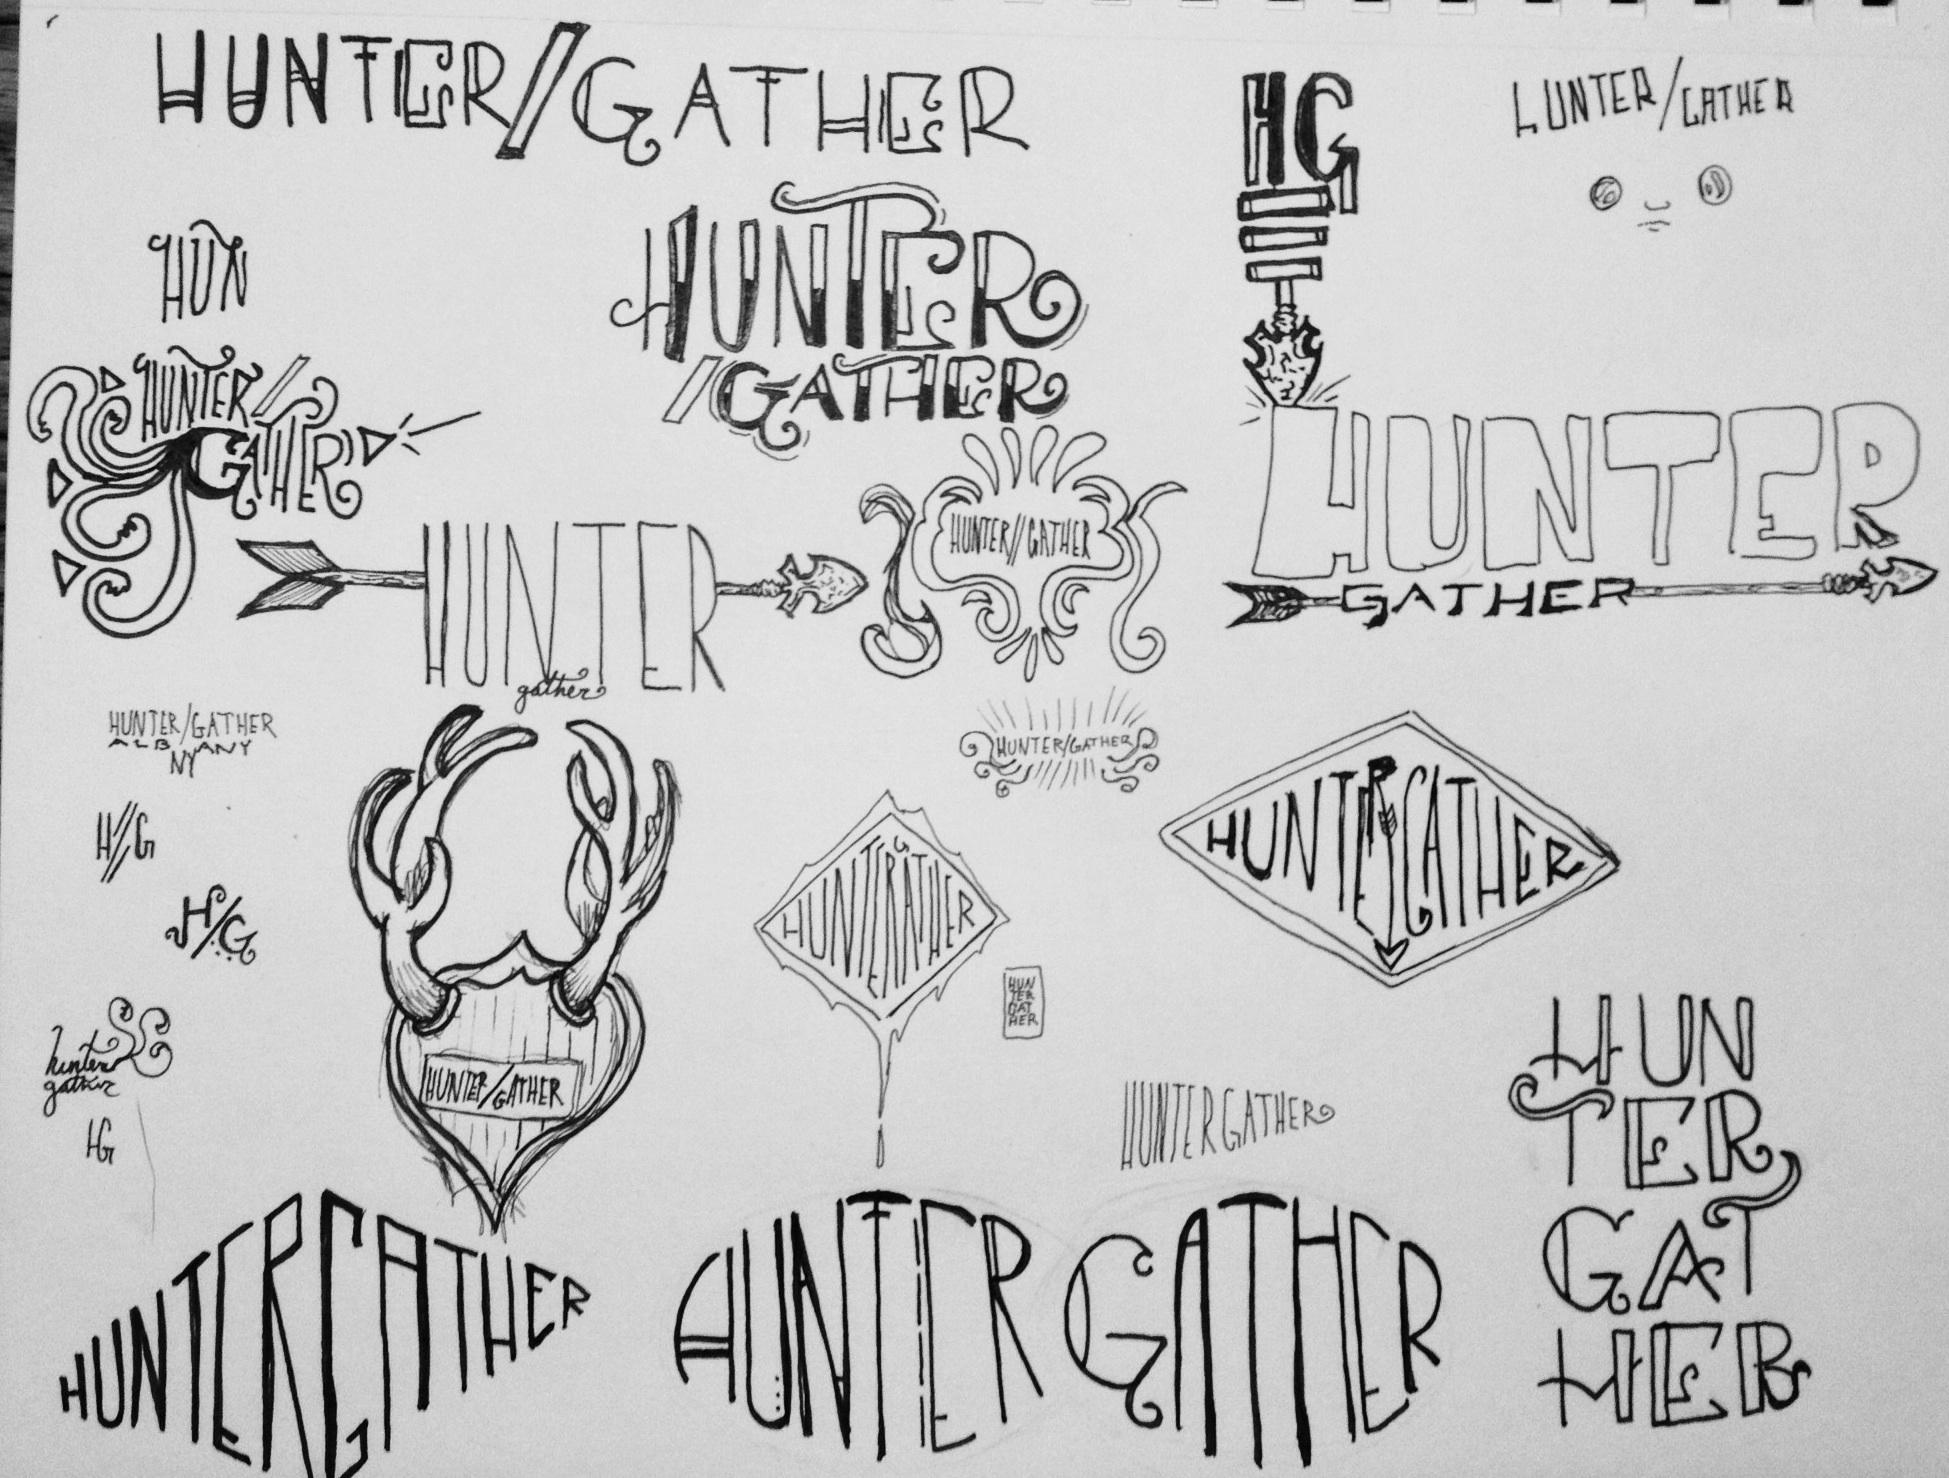 Hunter/Gather - image 1 - student project